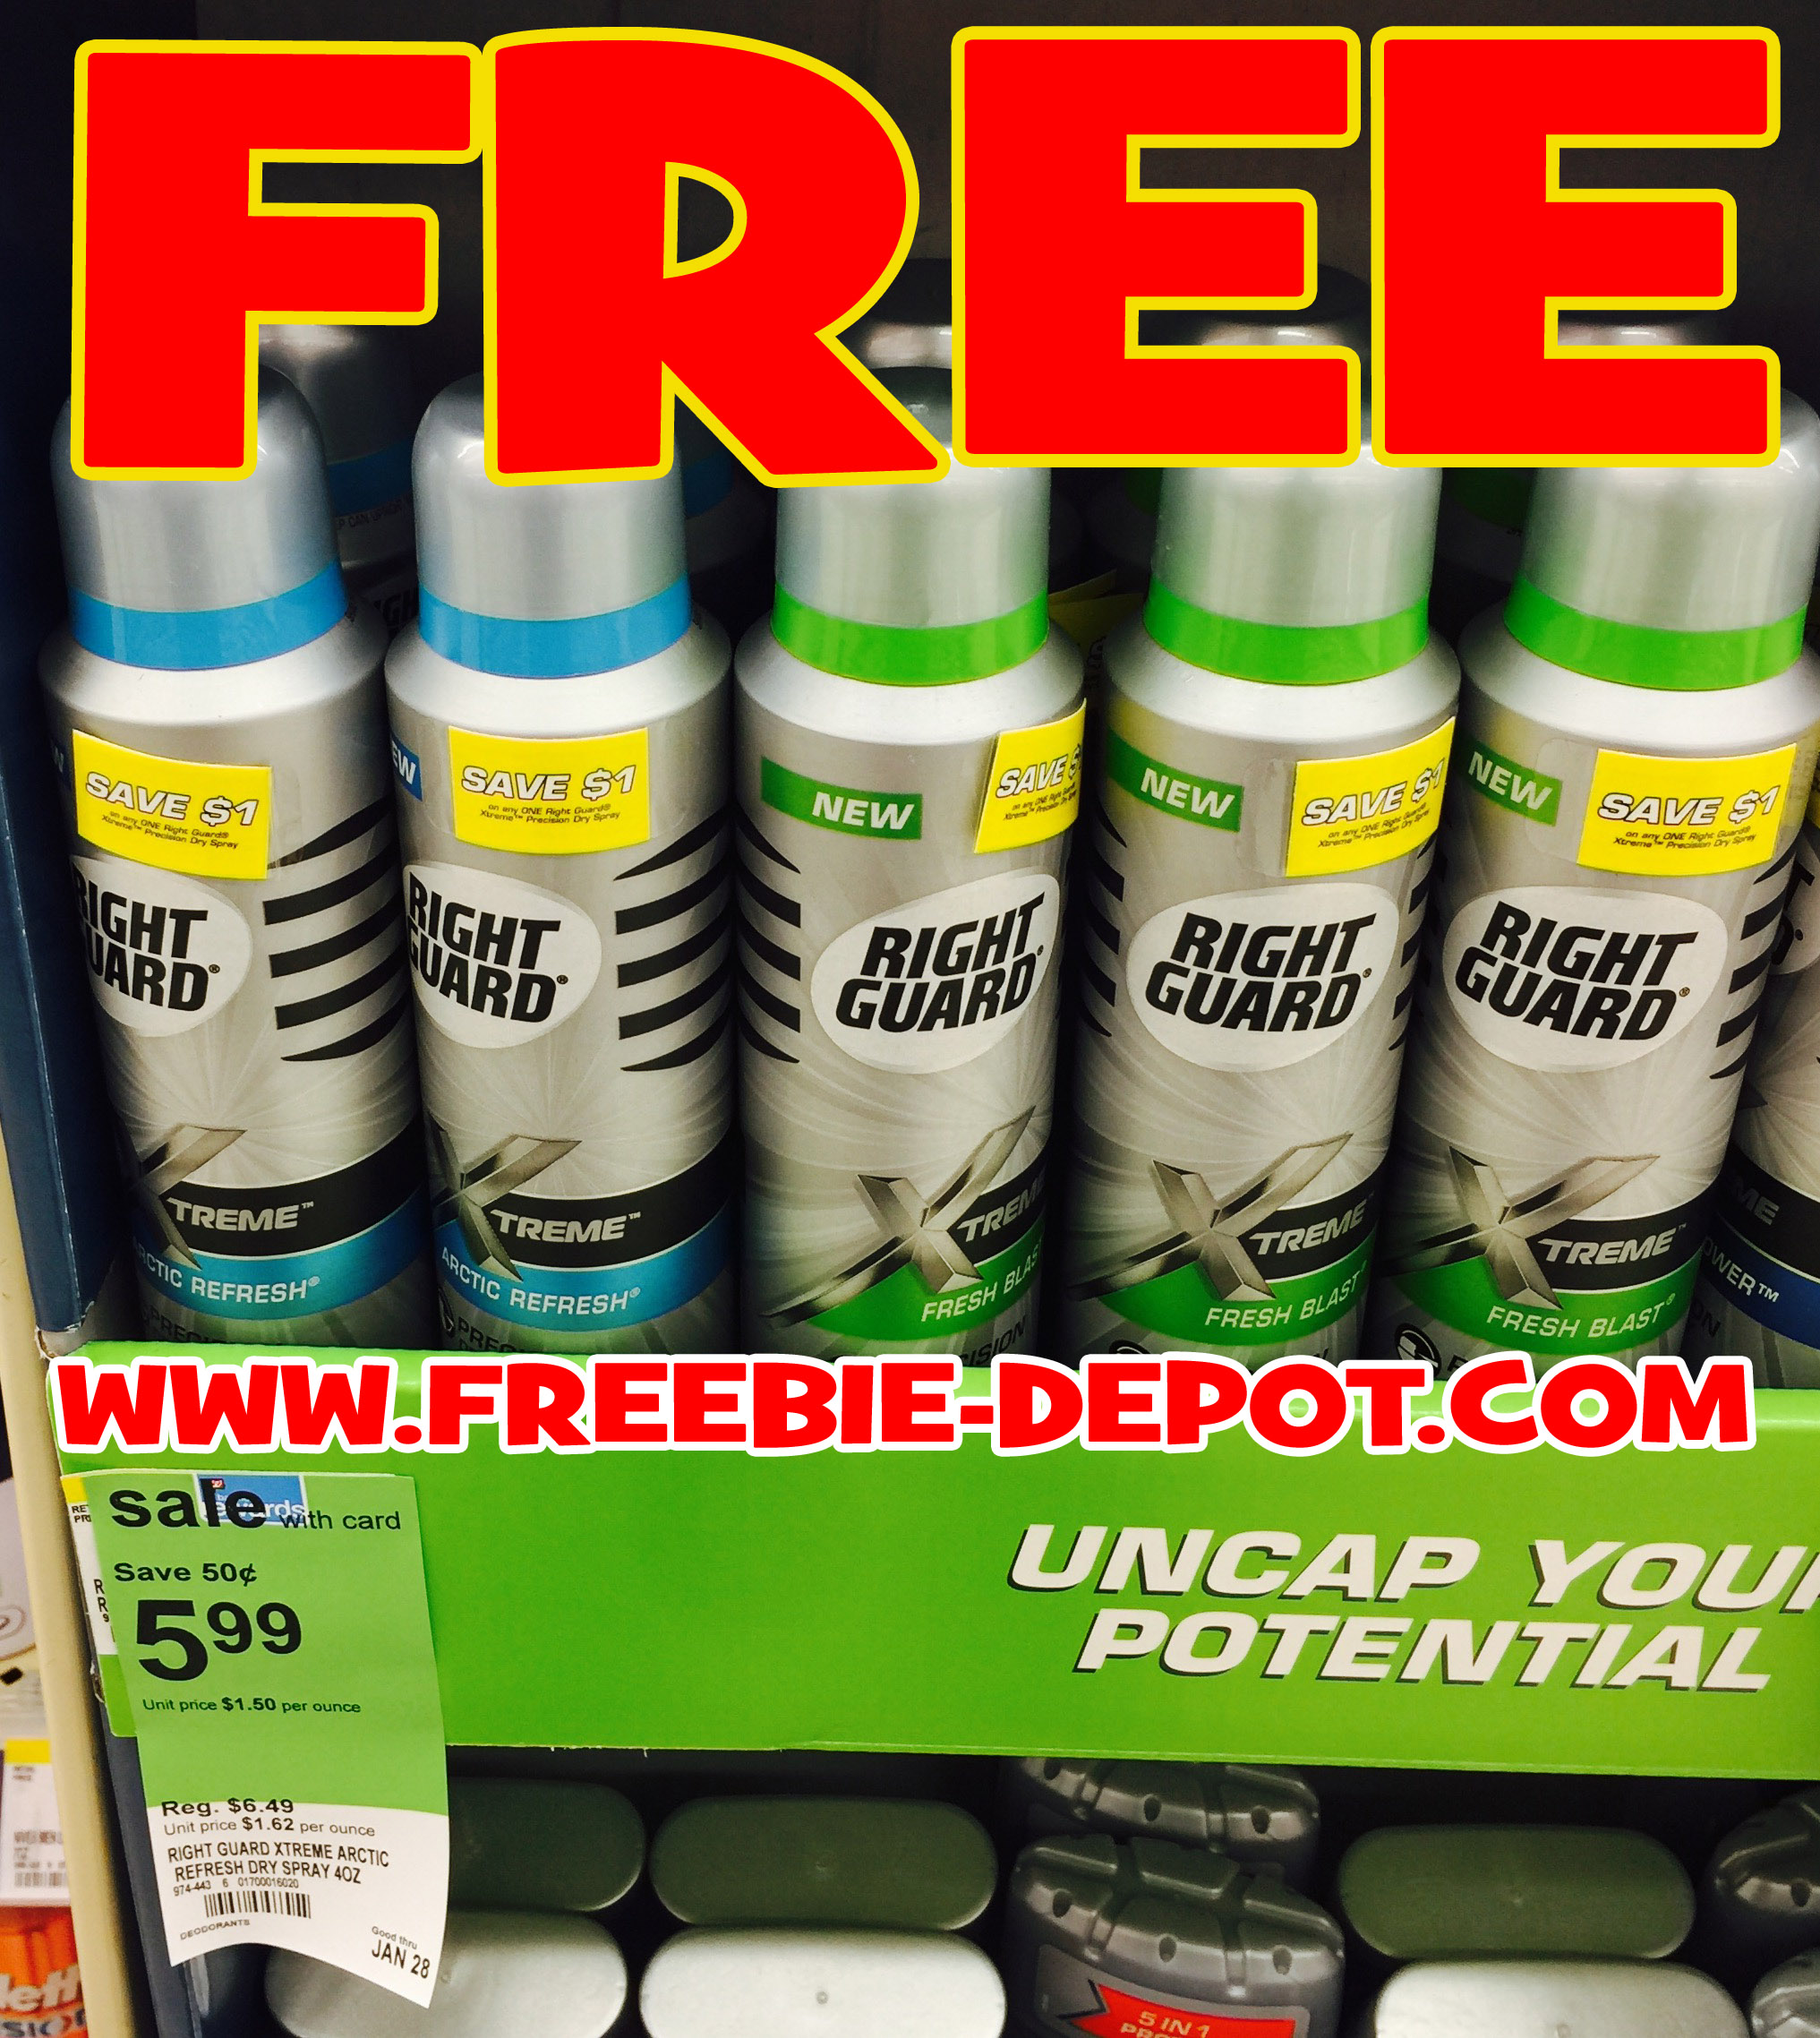 FREE AFTER REBATE – Right Guard Xtreme Precision Dry Spray Antiperspirant – $6.99 Value – Exp 2/28/17